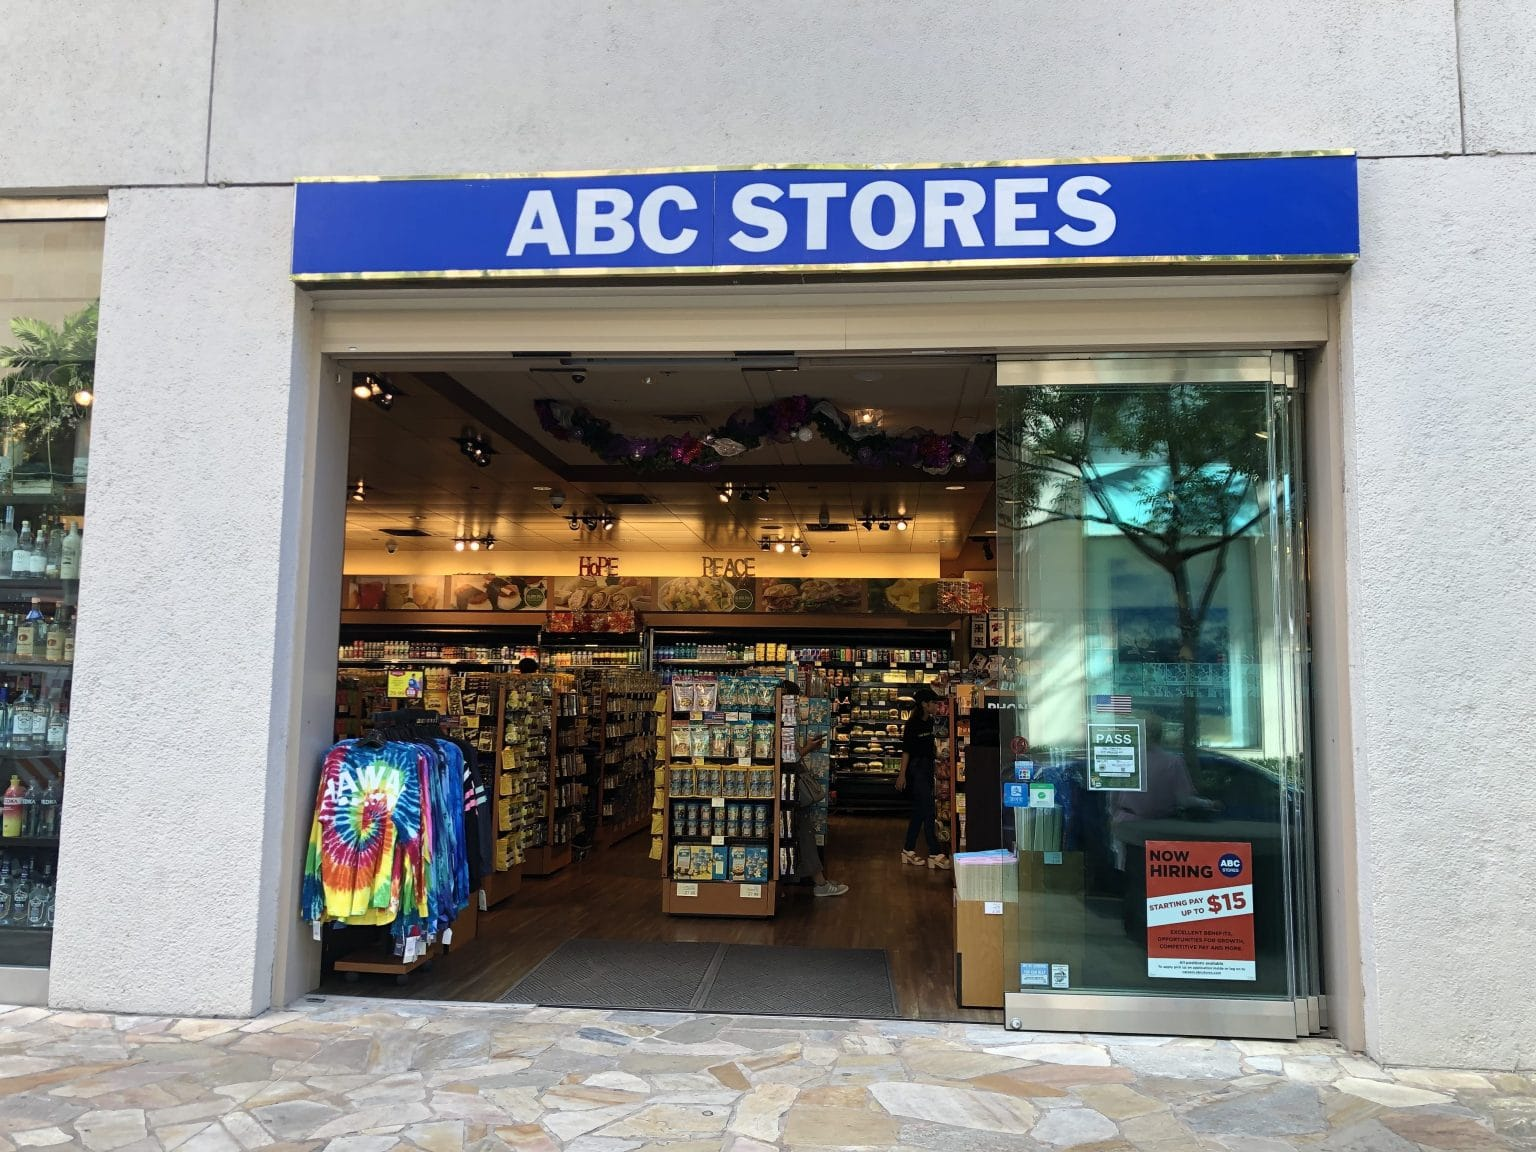 street view of ABC stores